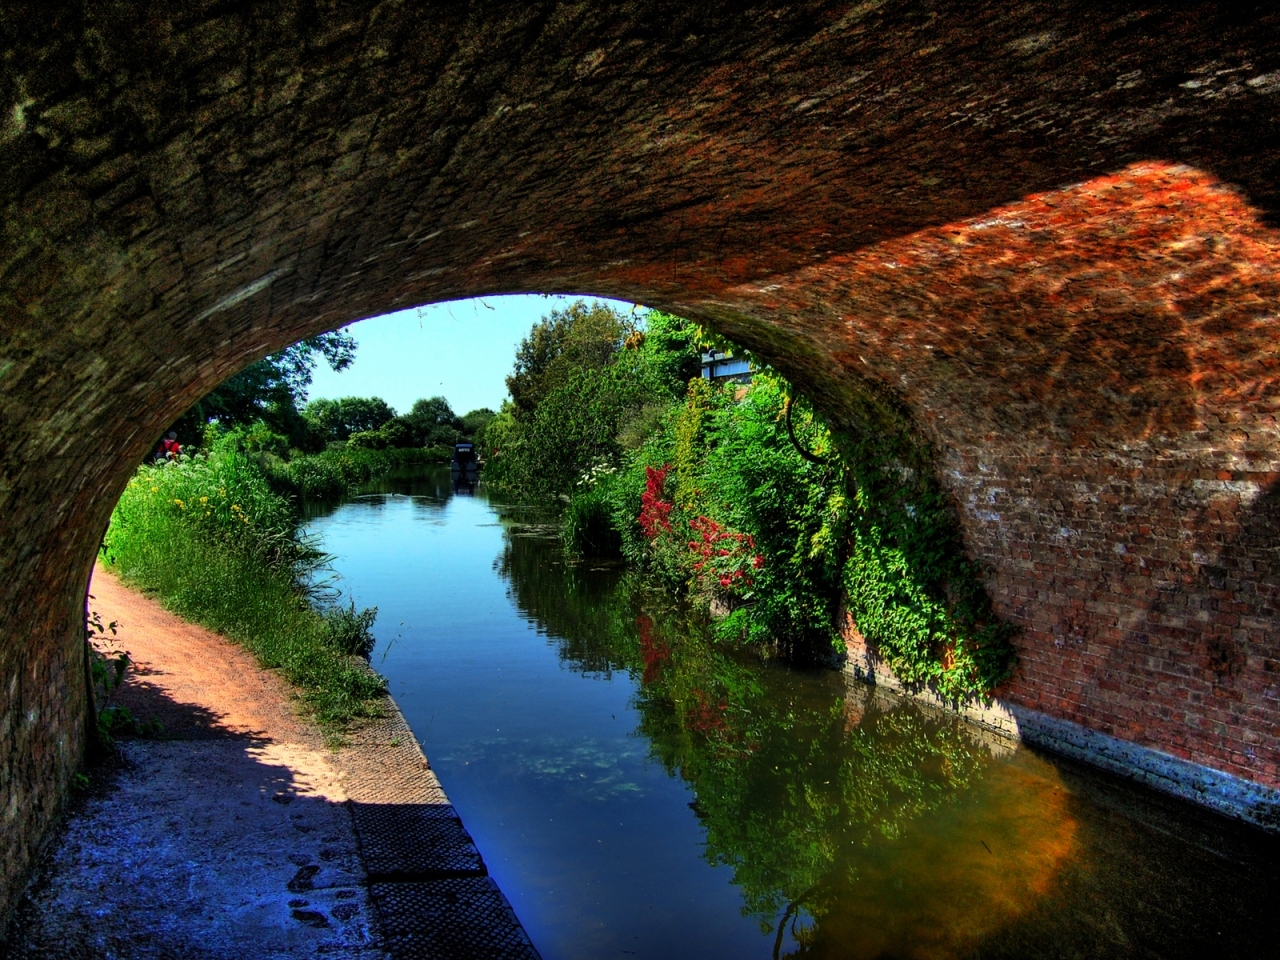 Canal Under An Arched Bridge for 1280 x 960 resolution